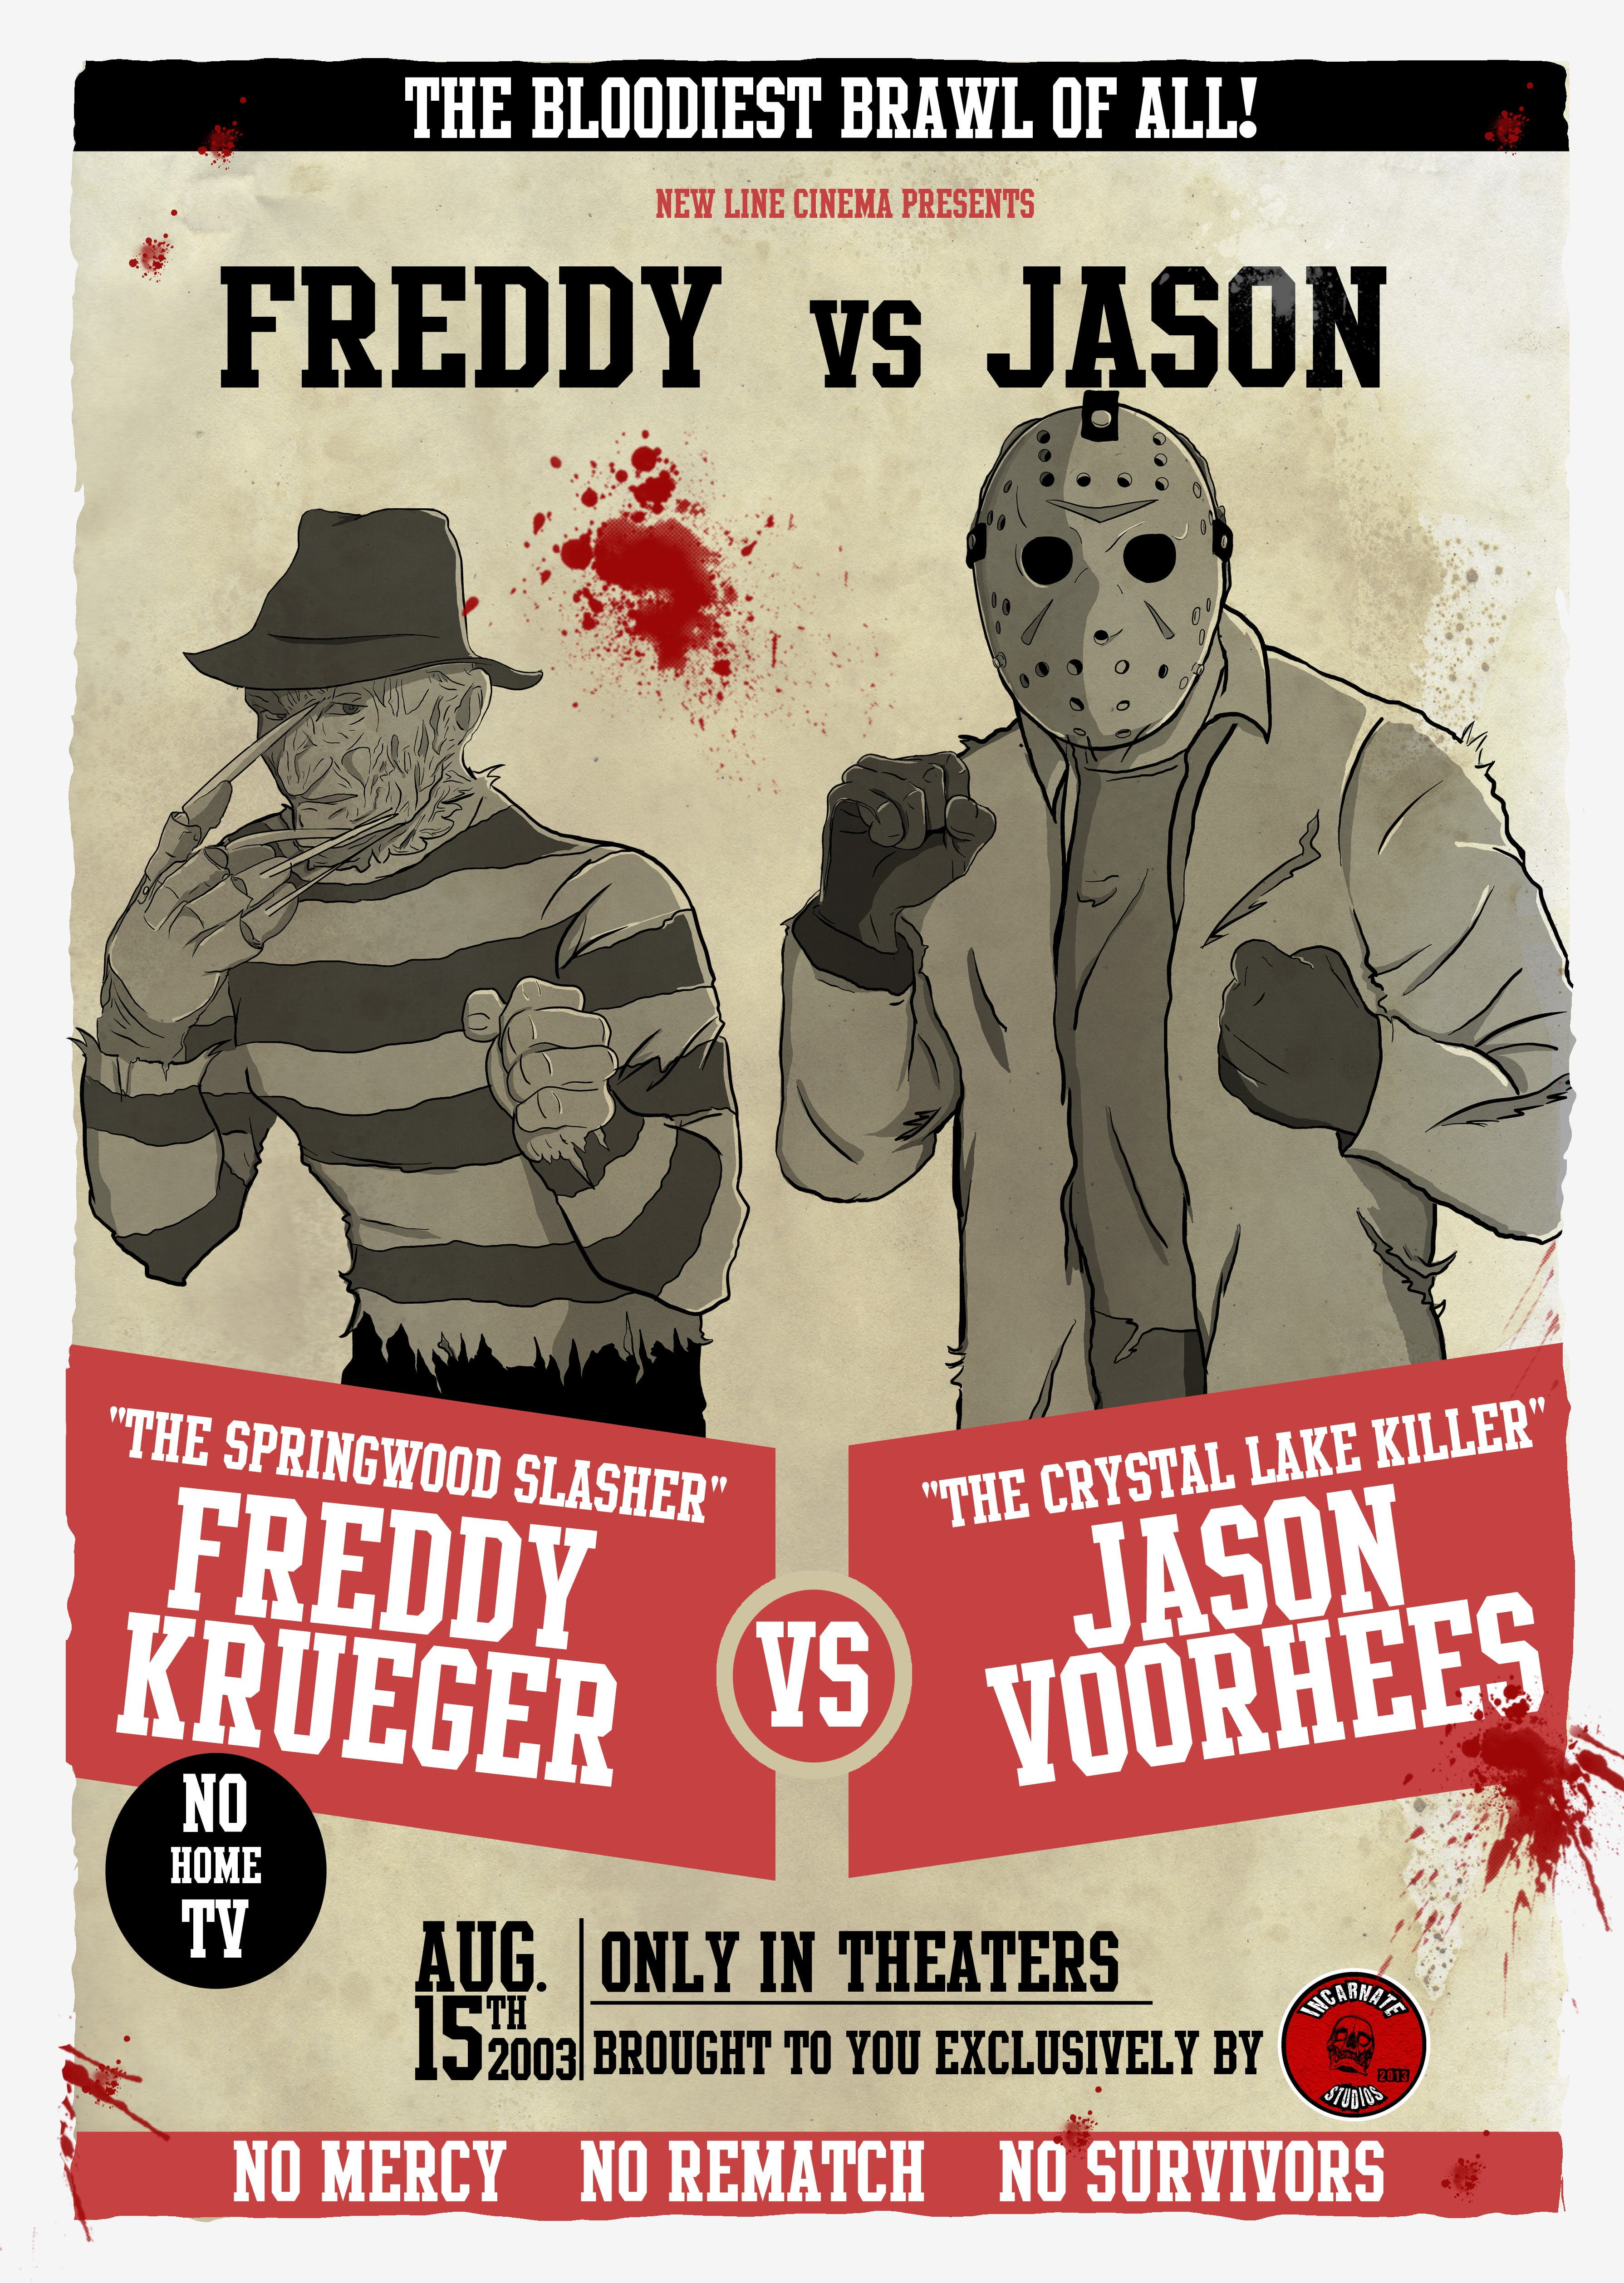 Freddy vs Jason Fight Poster